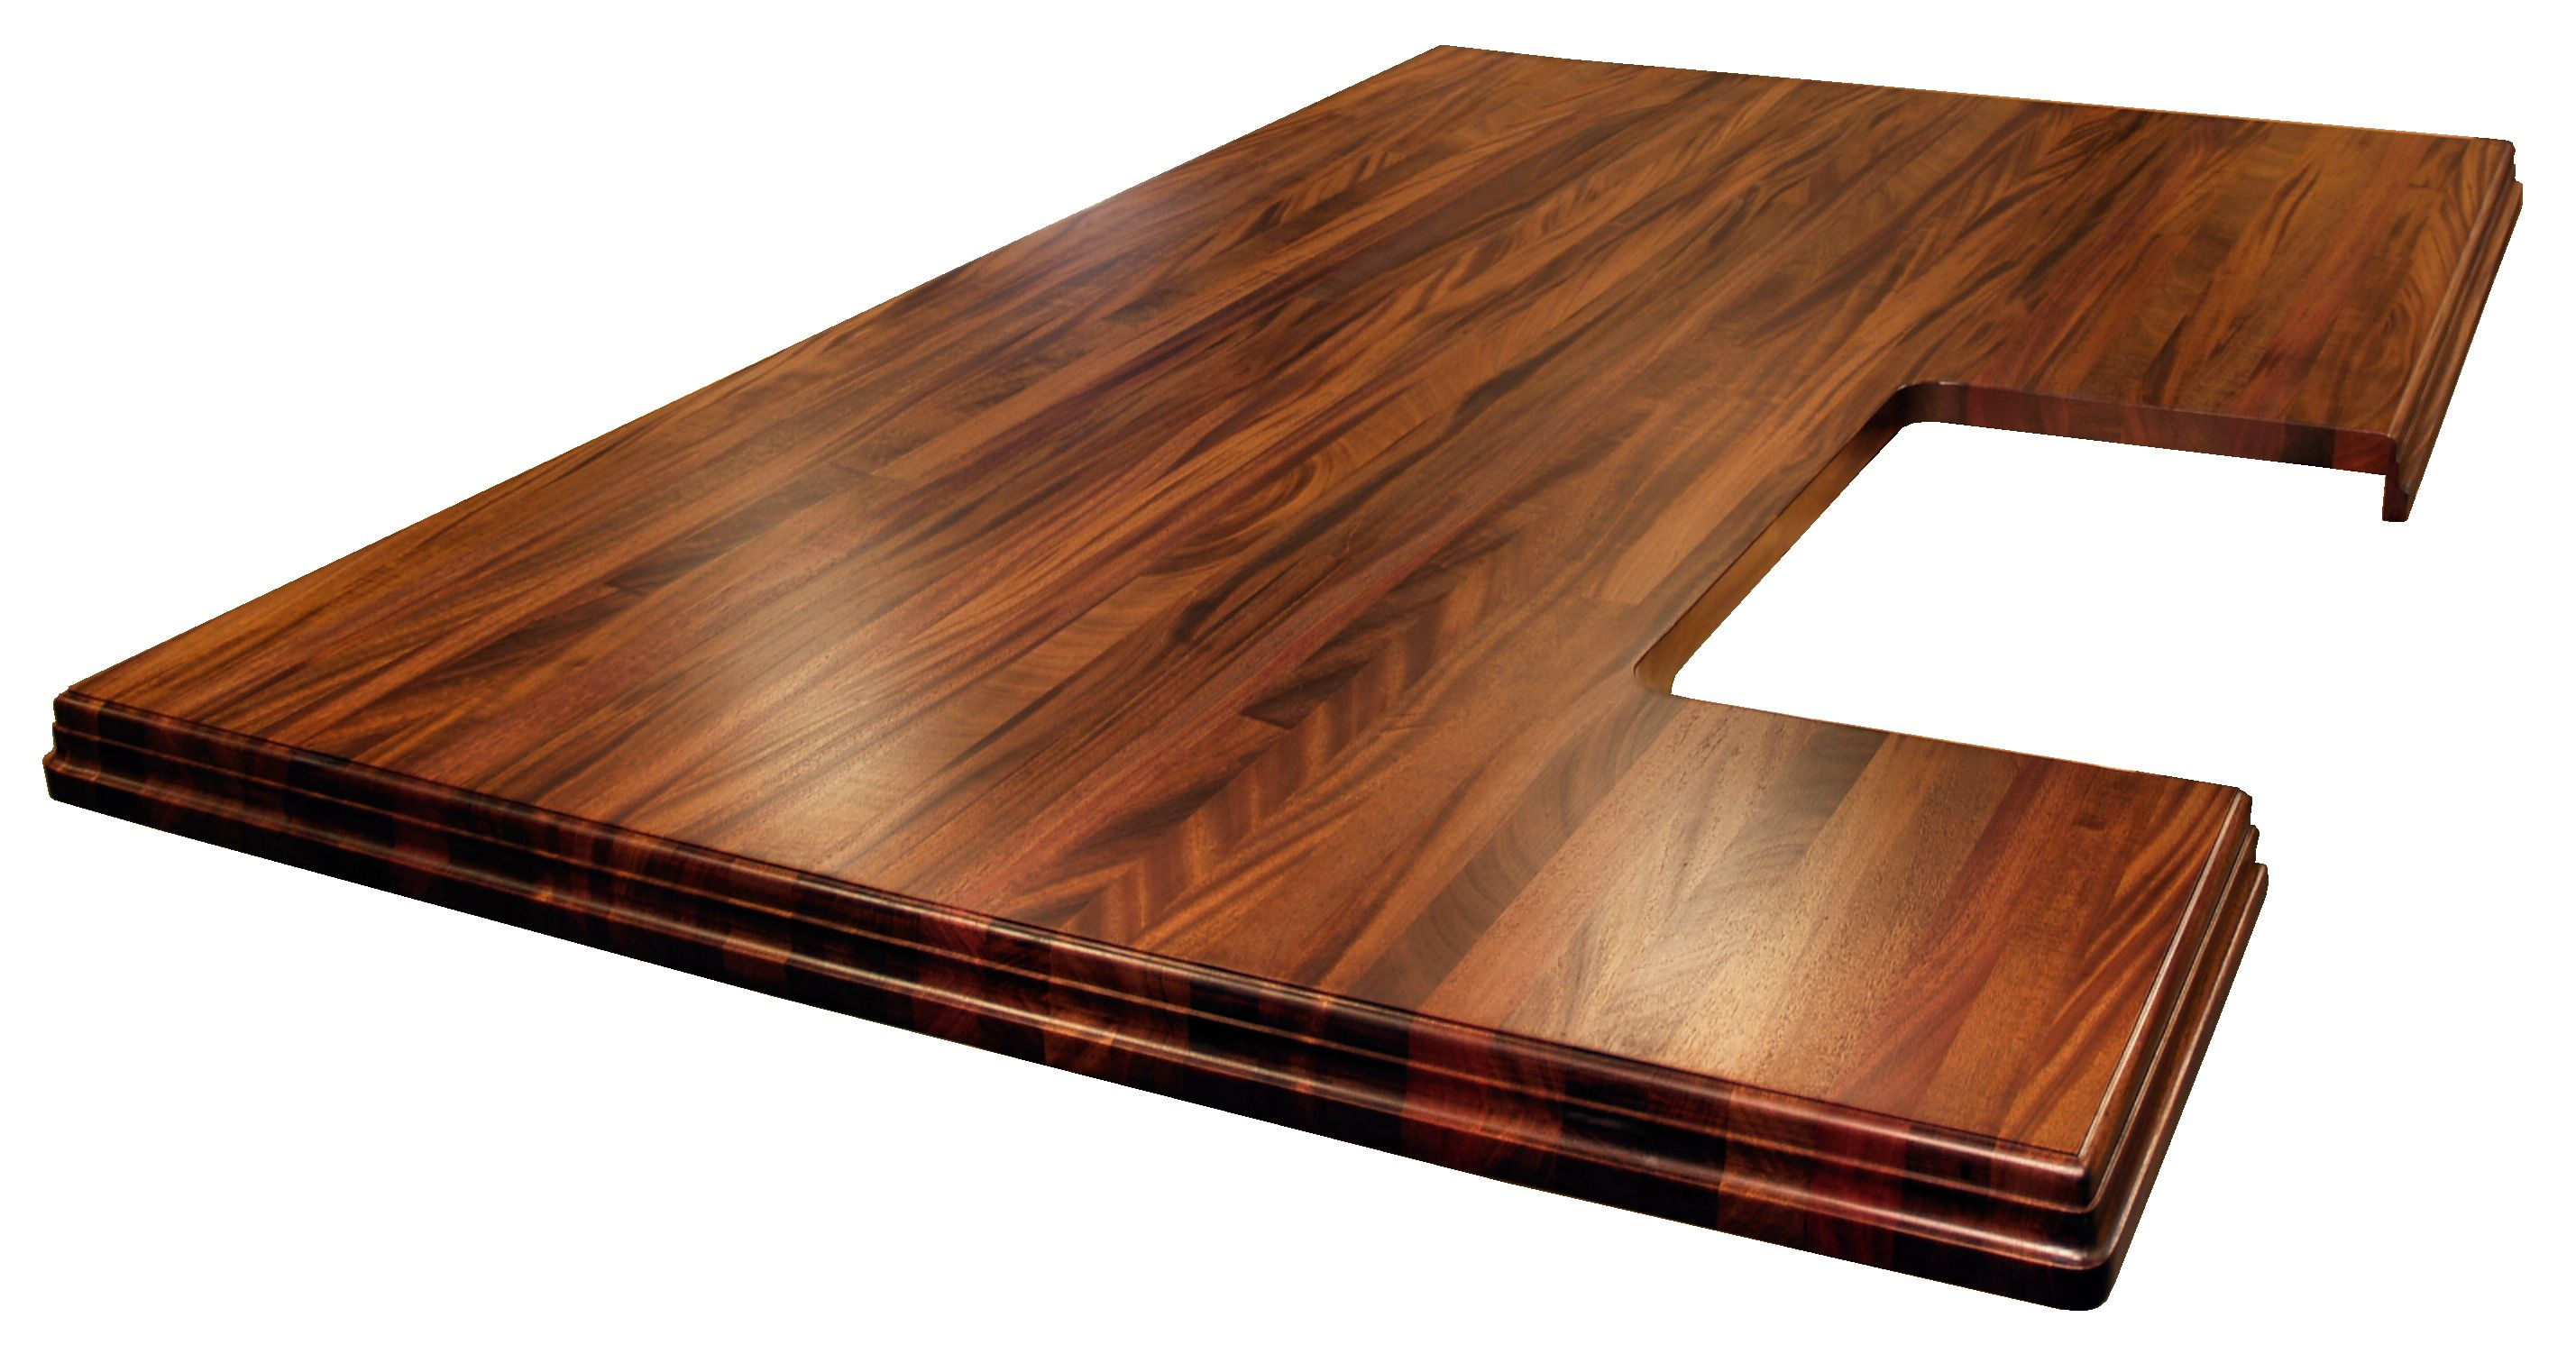 Beautiful ... African Mahogany Island Top With Walnut Stain. Edge Grain Construction  With Book Matched Drop